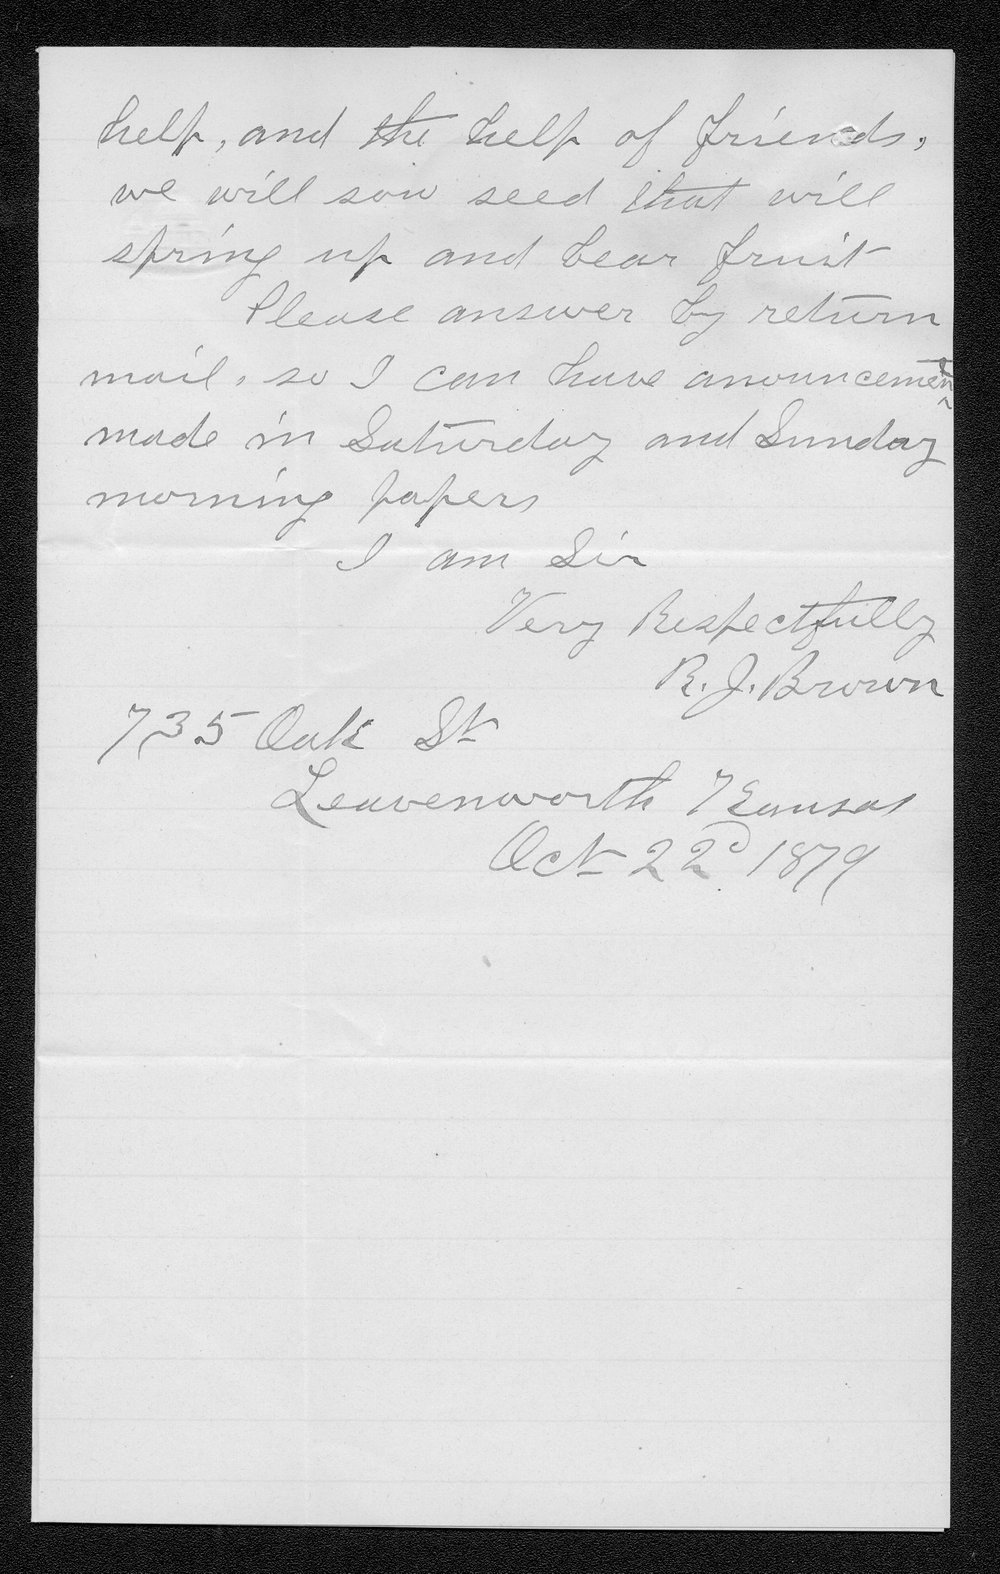 R.J. Brown to Governor John St. John - 2